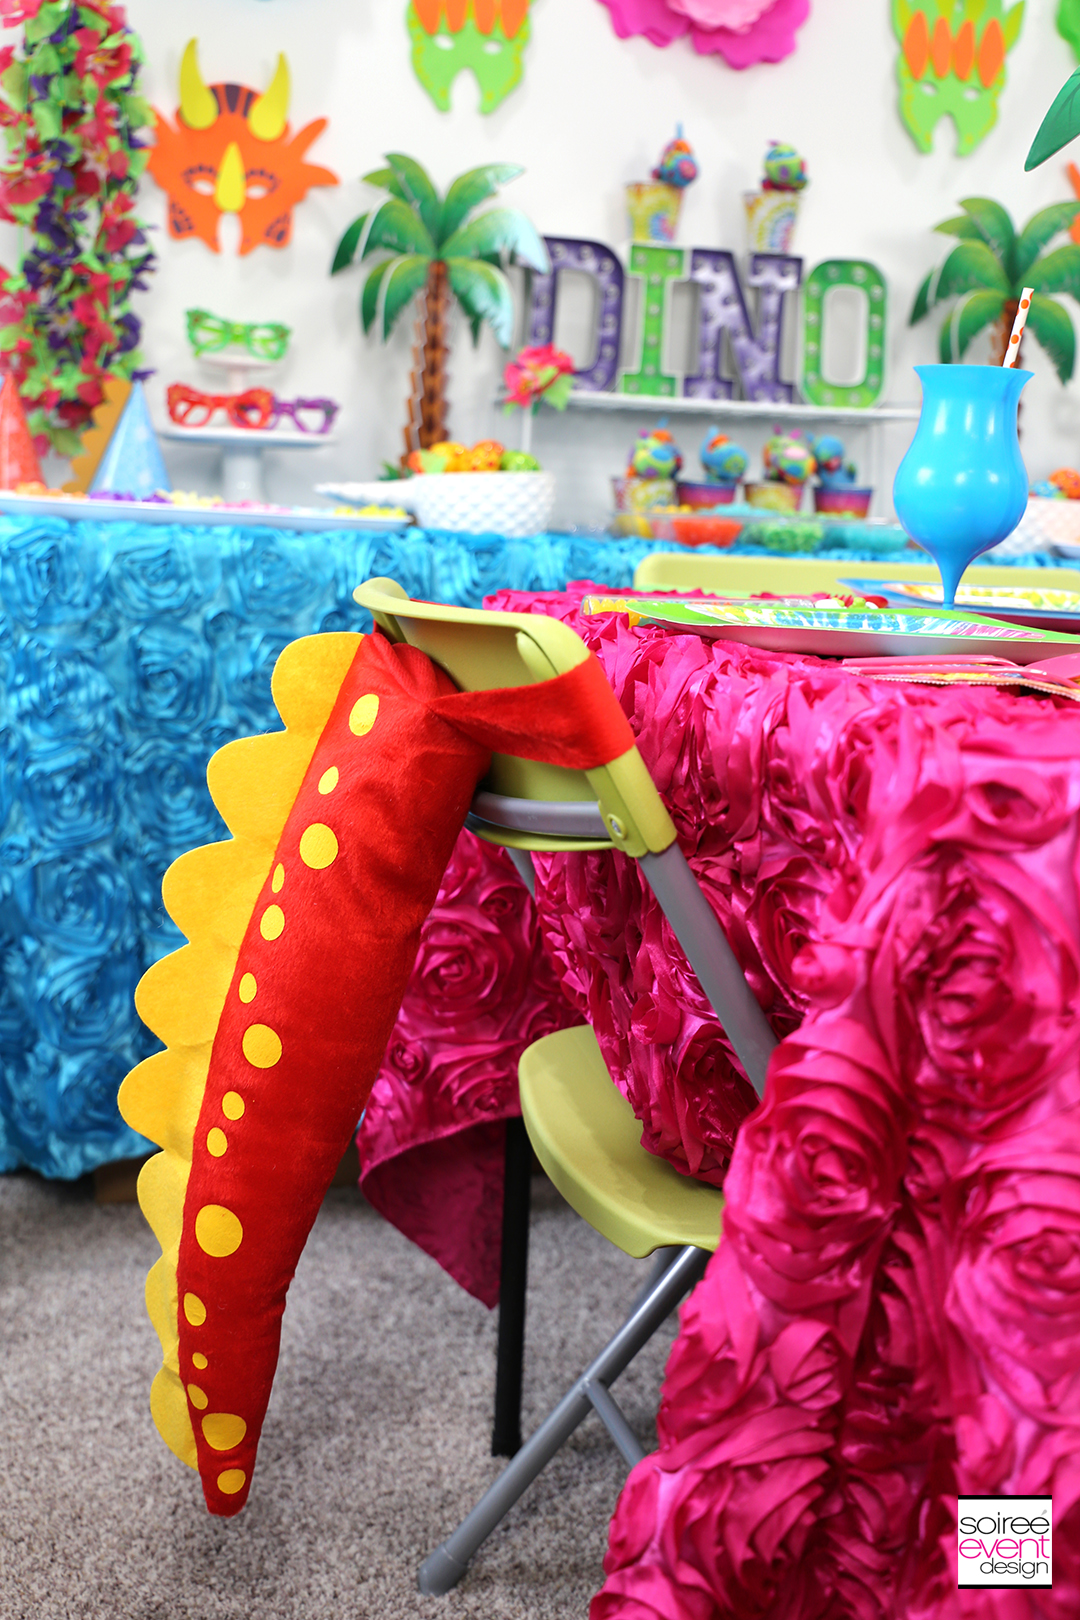 Girly Dinosaur Party Ideas For Girls - Soiree Event Design